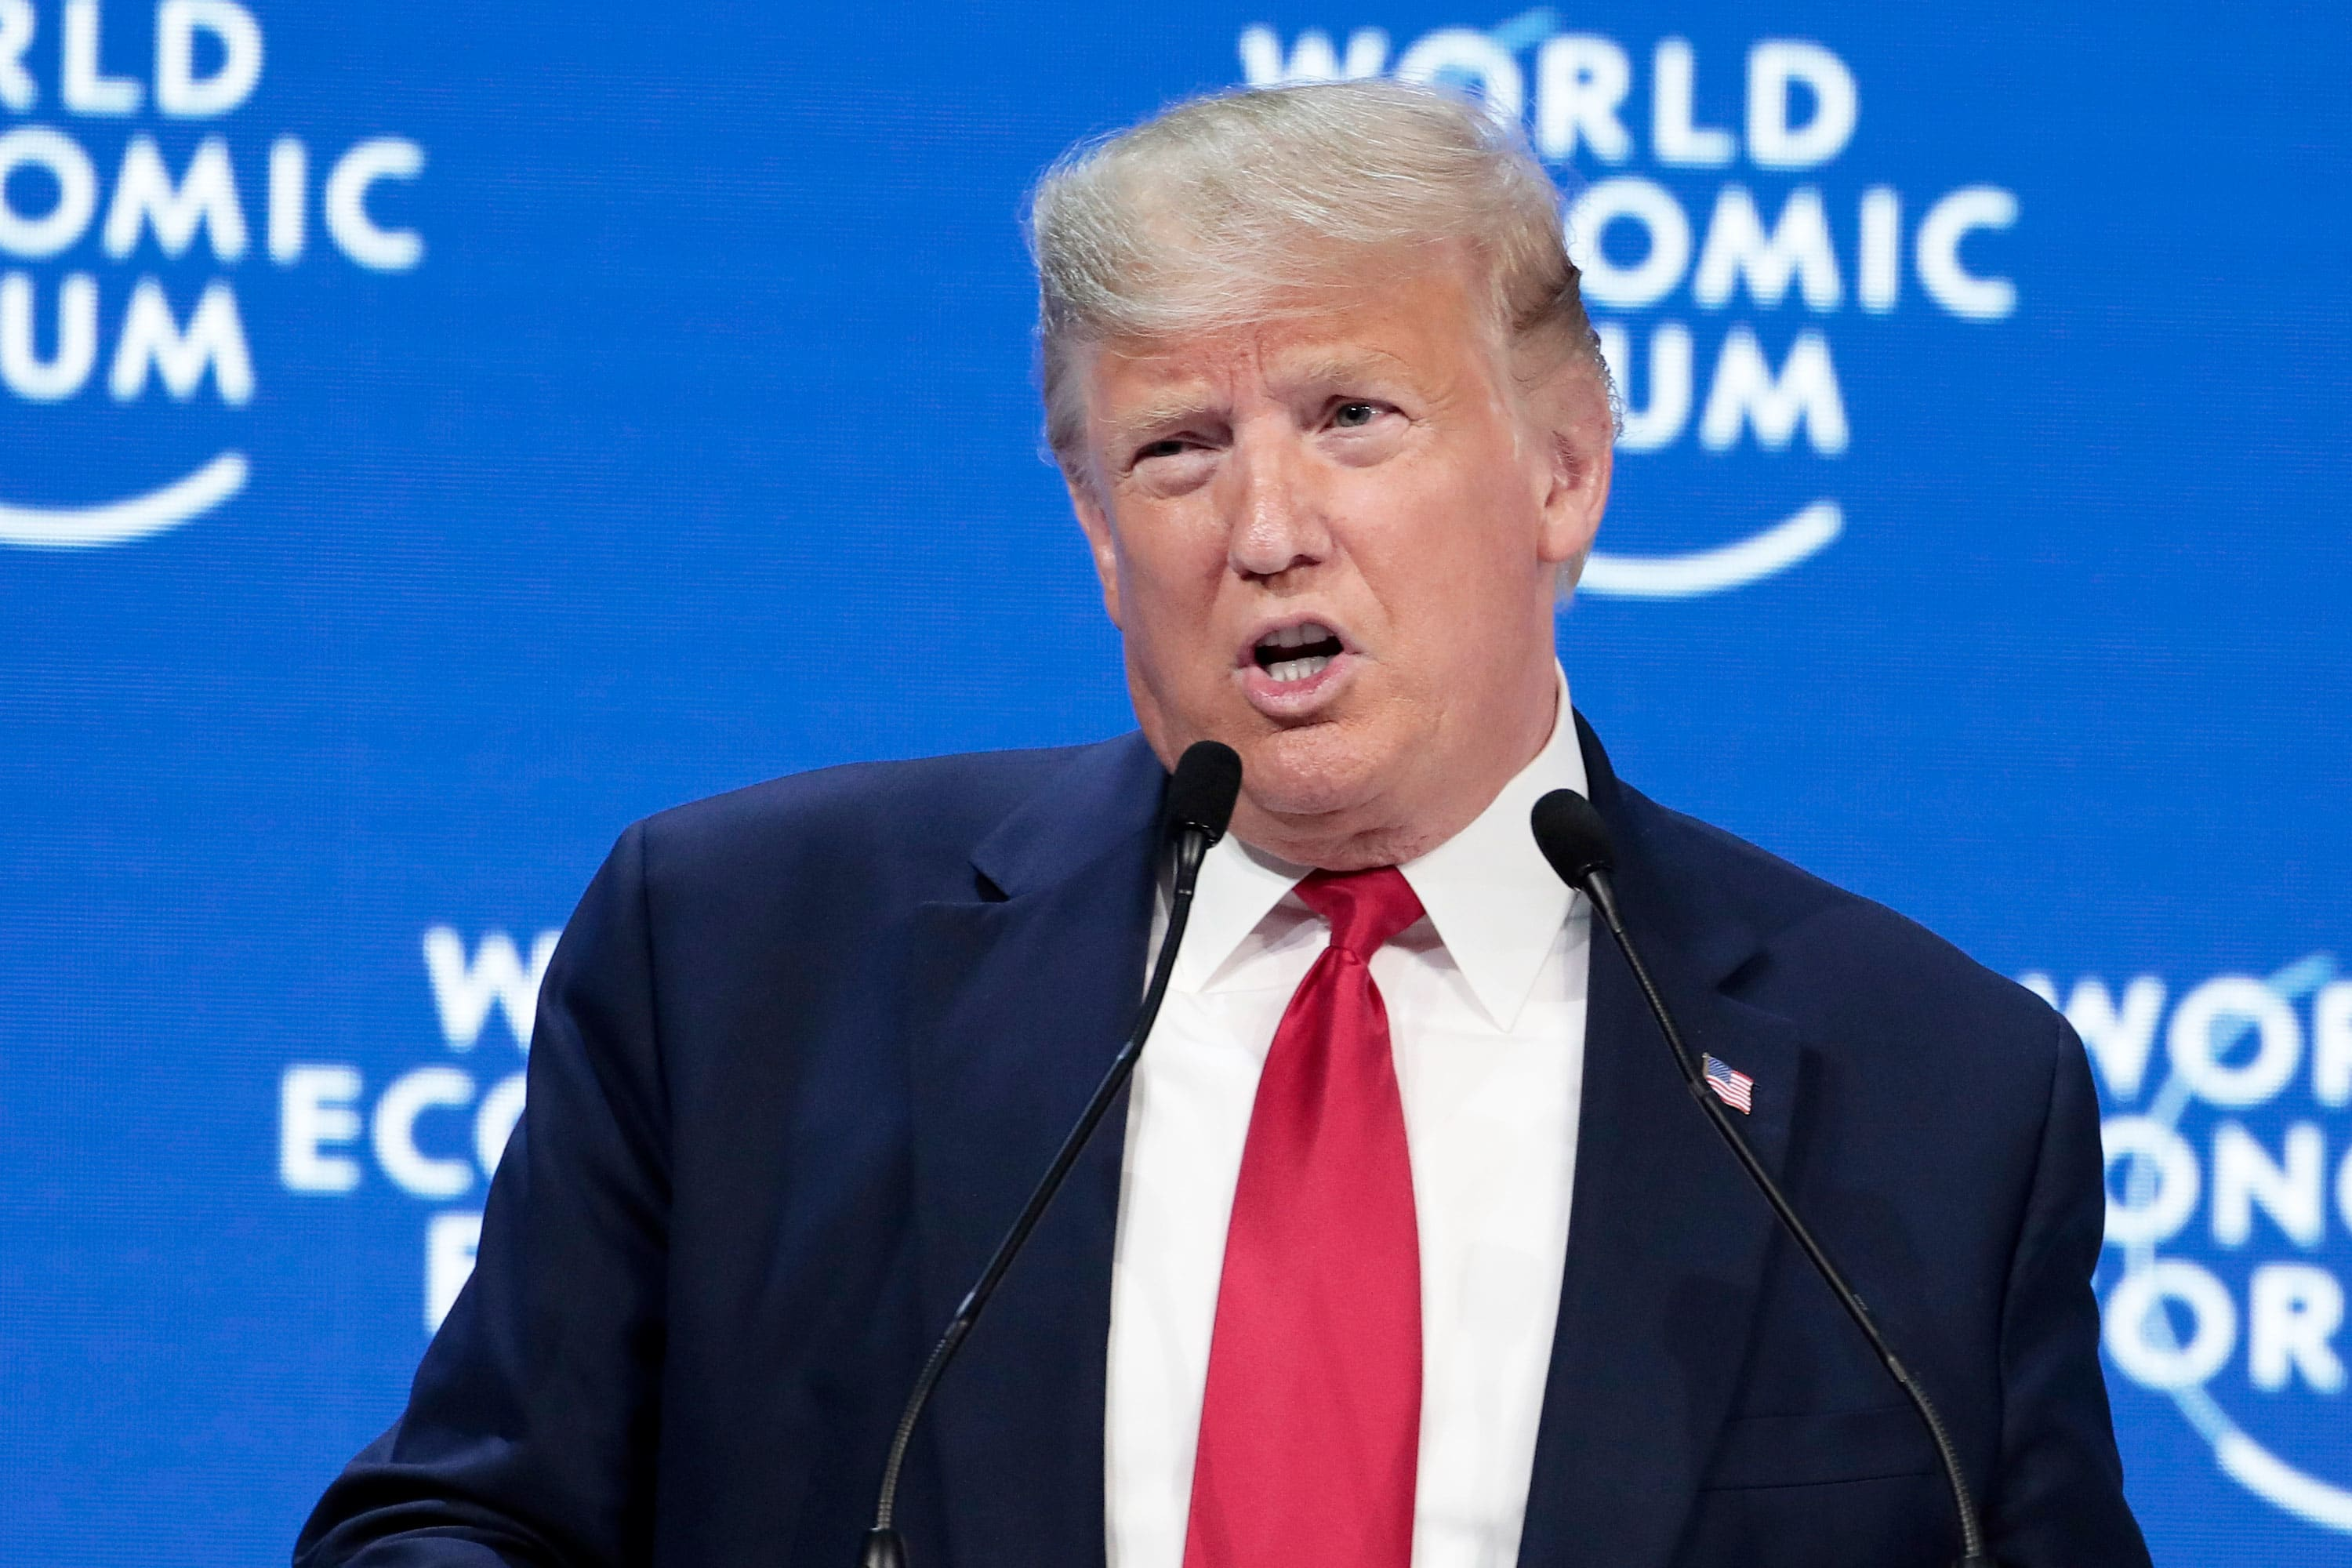 Leaders at Davos doubt China and US will reach a phase 2 trade deal by end of Trump's term